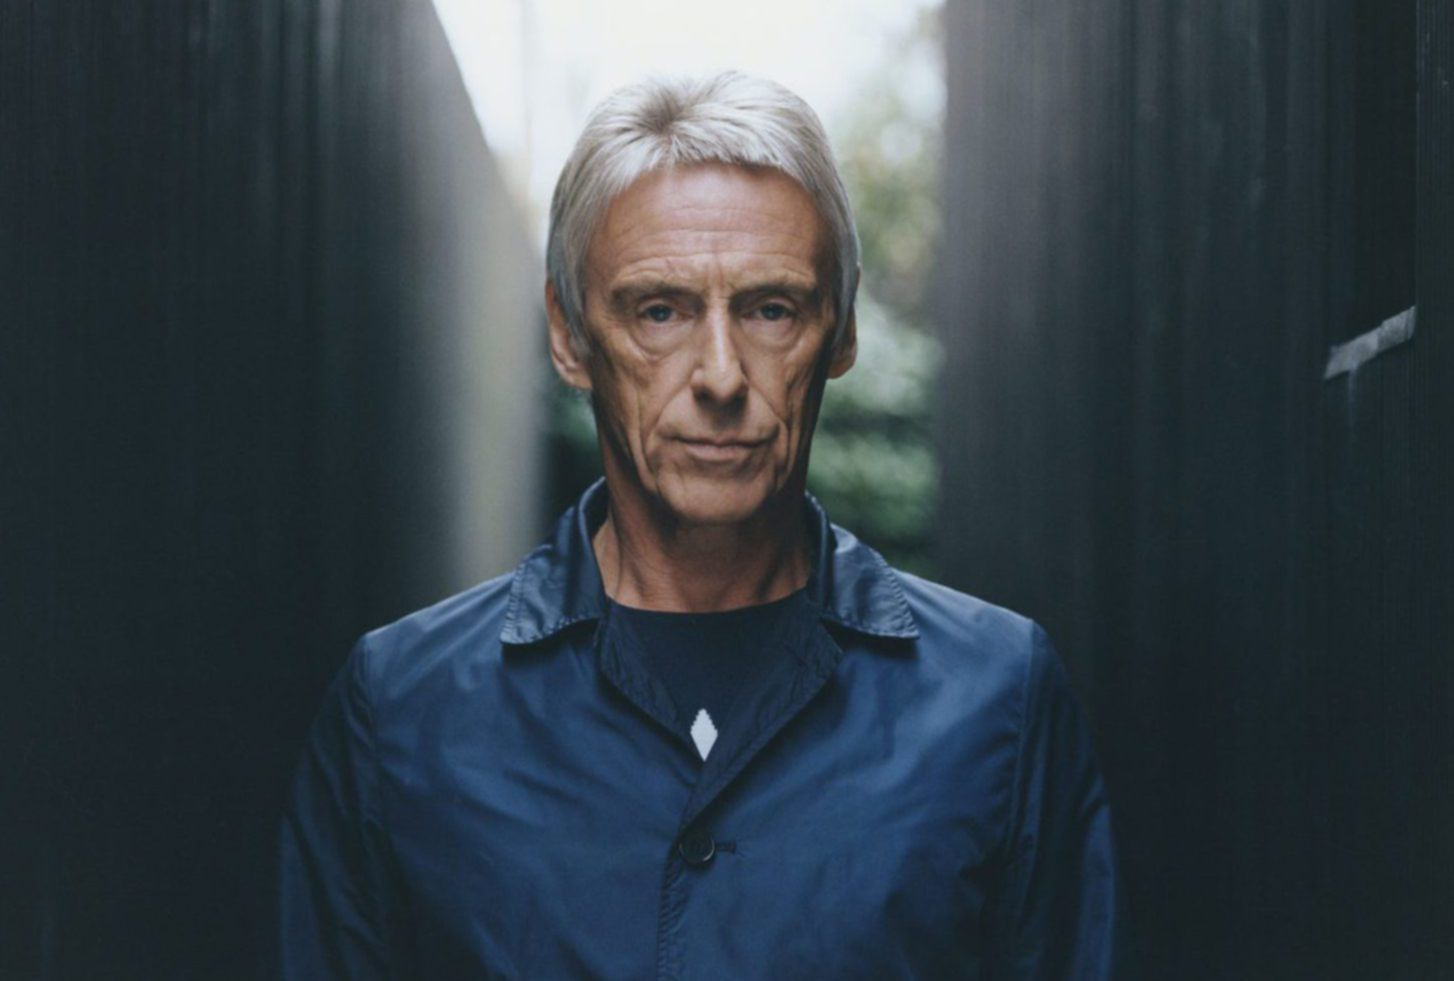 BPREVIEW: Paul Weller @ Genting Arena 24.08.18